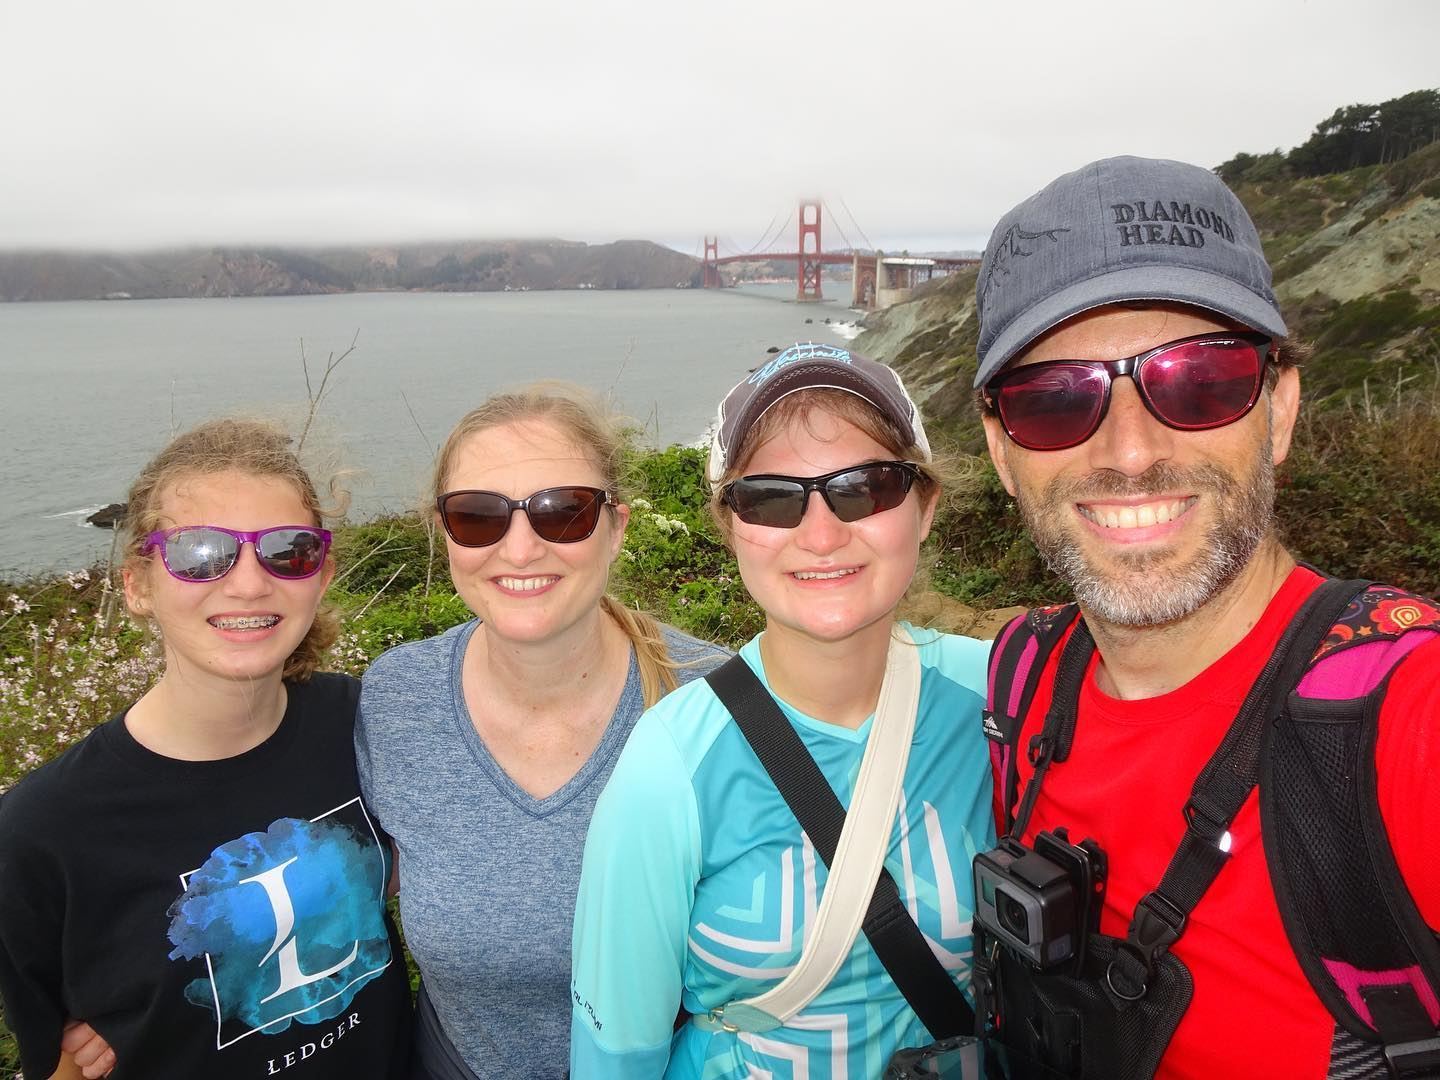 San Francisco Day 4 - Spent my Birthday hiking along the coast from Land's End to Golden Gate Bridge to Fisherman's Wharf. 9 miles in total with ridiculous views the whole way. We then walked another half mile to North Beach for a pizza feast. One of the best birthdays I can remember. #family #travel